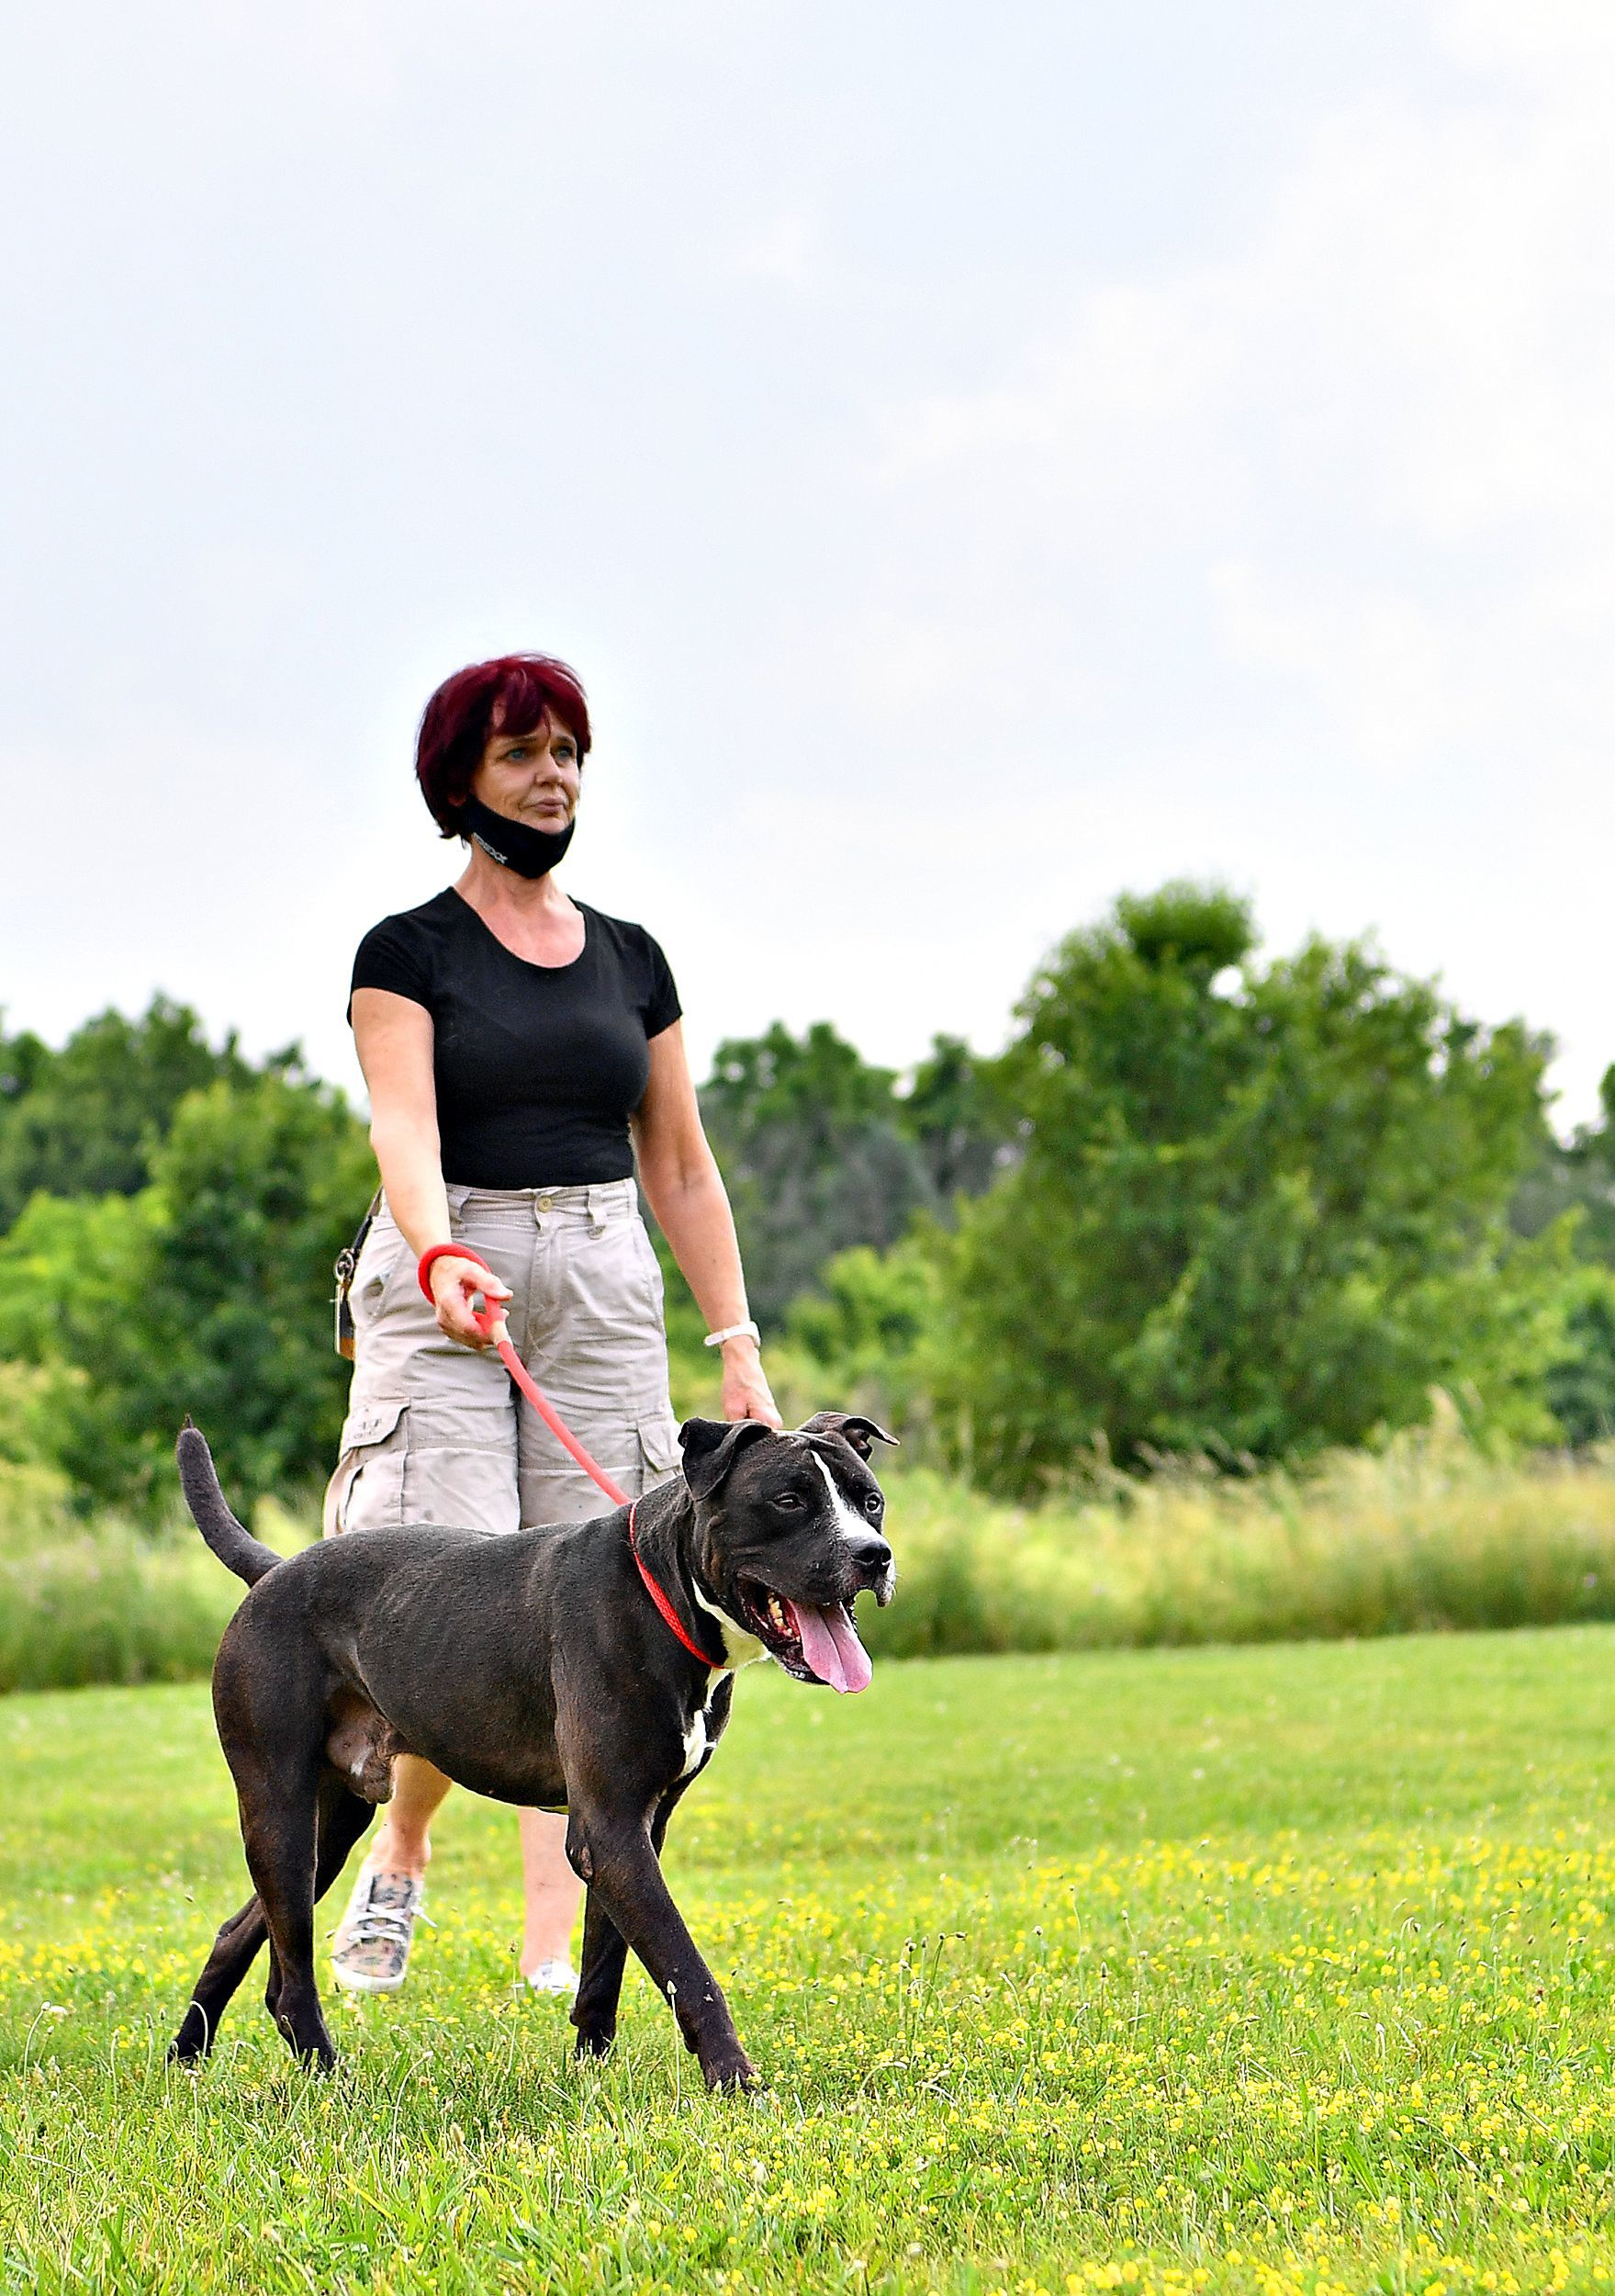 Clinic Corner: First Aid for Heat Stroke in Dogs